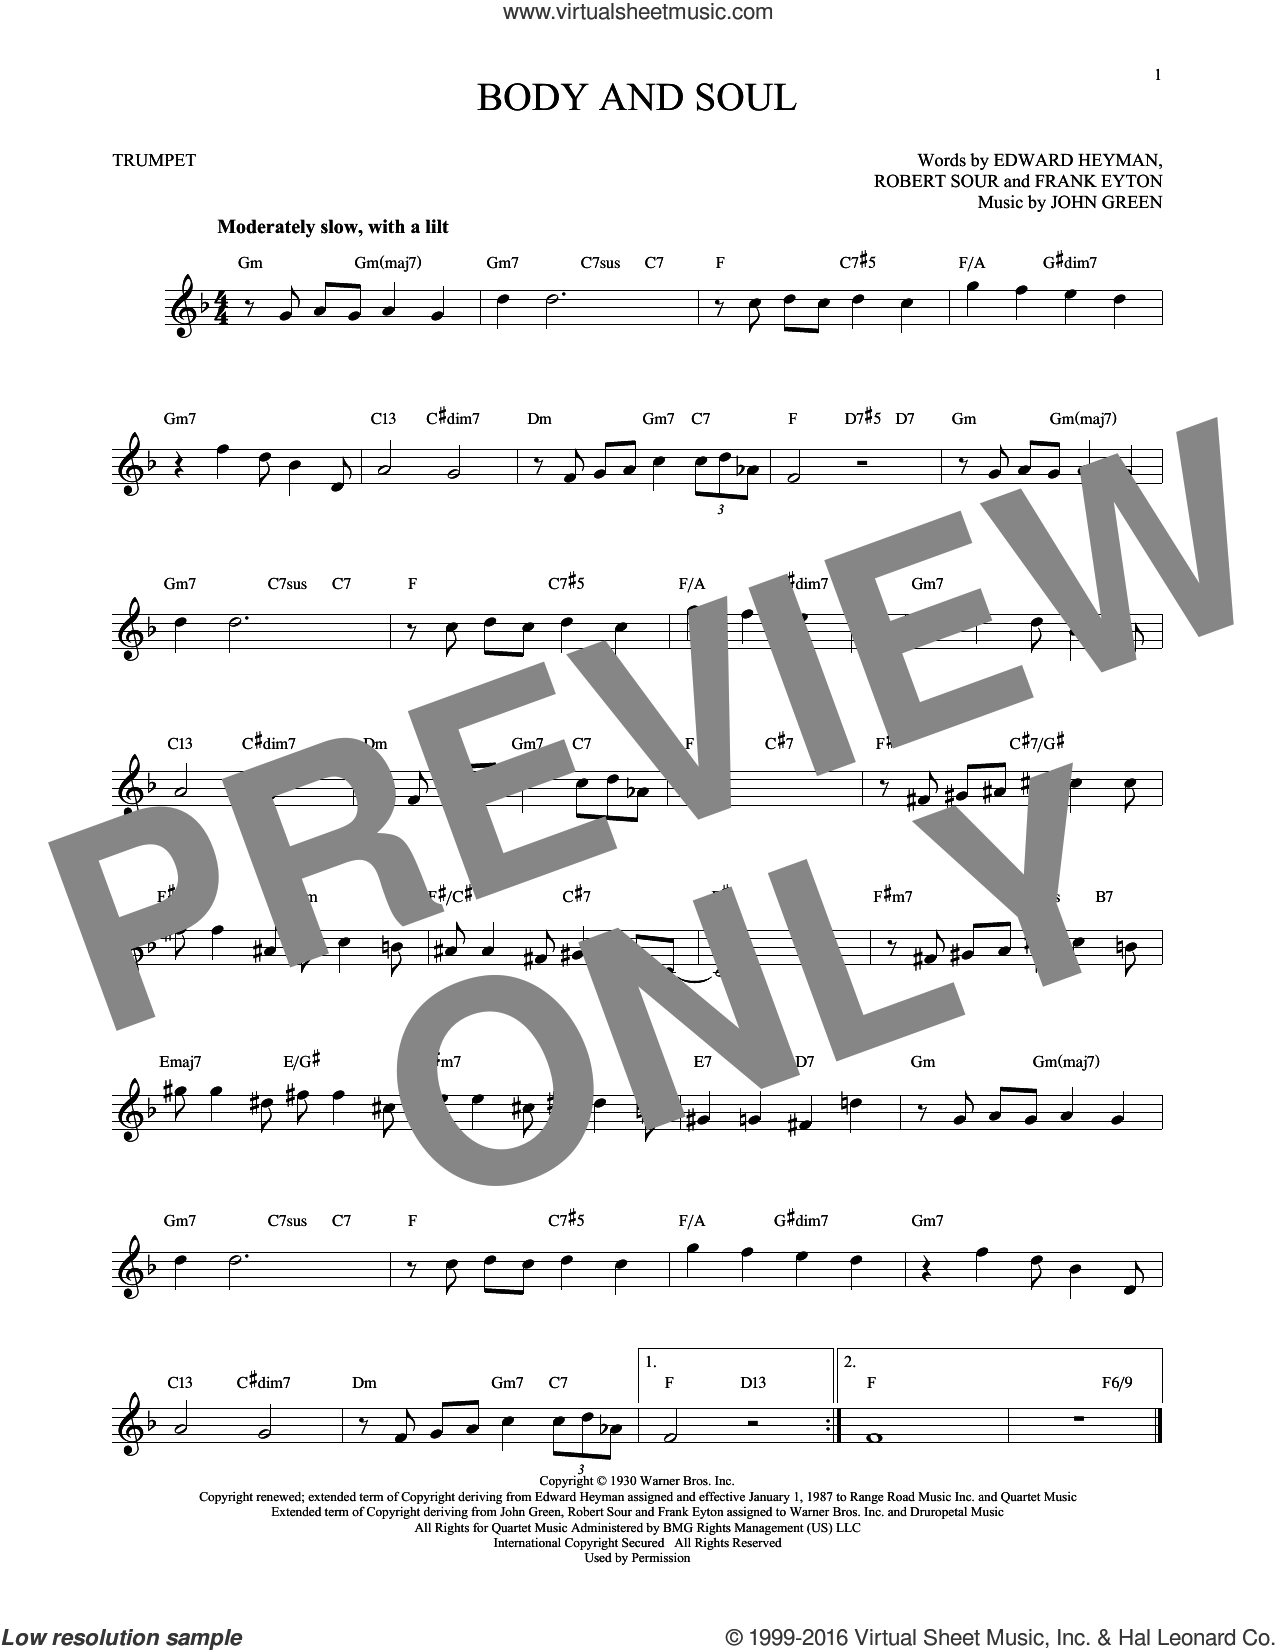 Body And Soul sheet music for trumpet solo by Robert Sour, Tony Bennett & Amy Winehouse, Edward Heyman, Frank Eyton and Johnny Green. Score Image Preview.